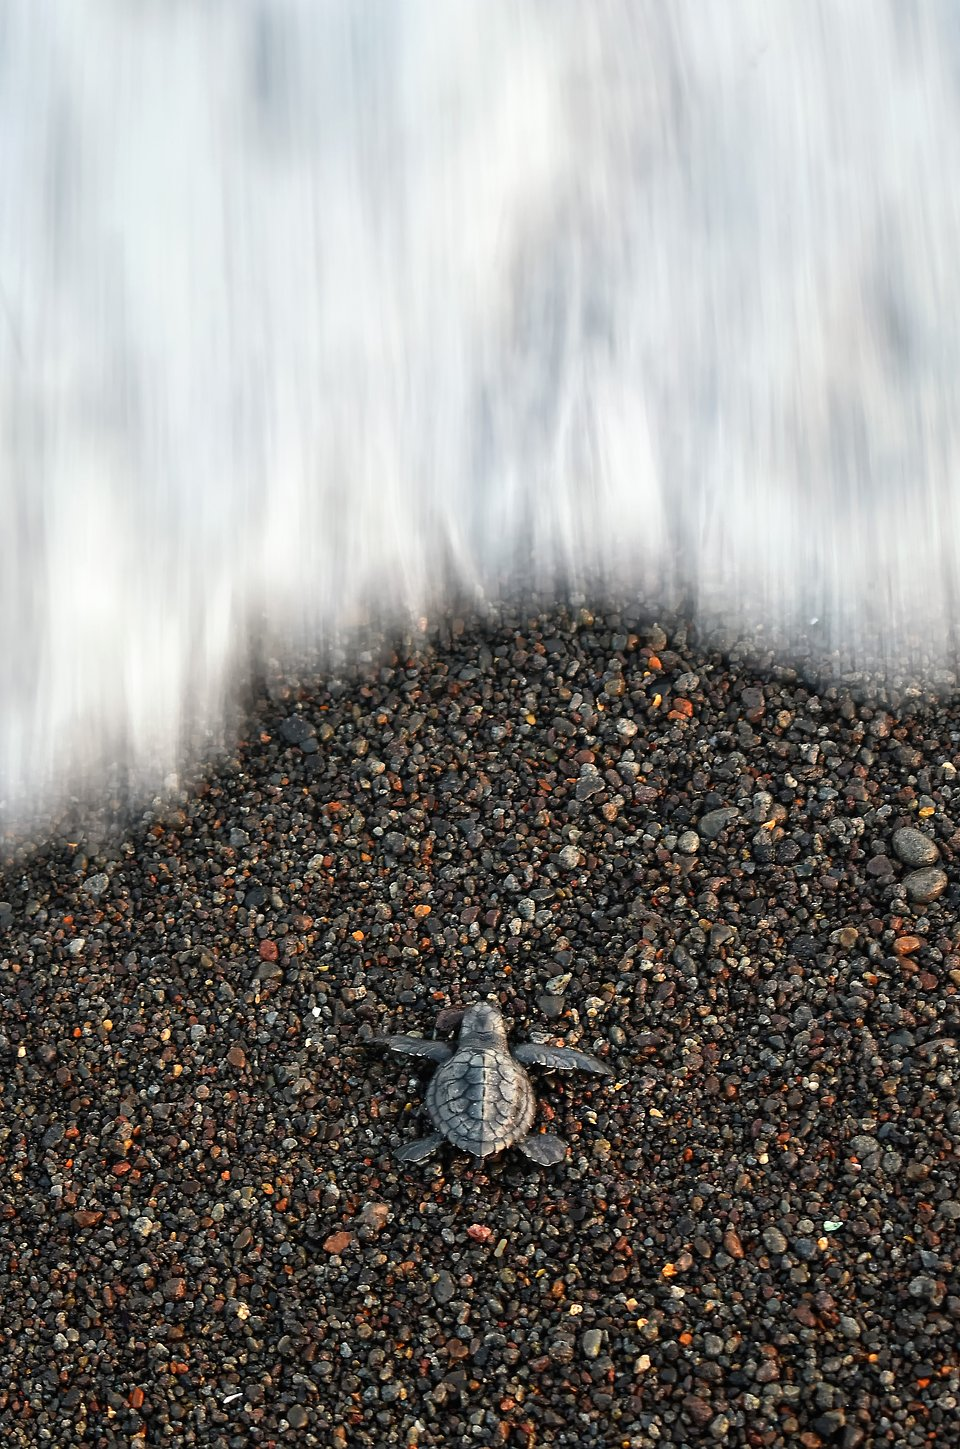 award winning micro photography baby turtle by pantai